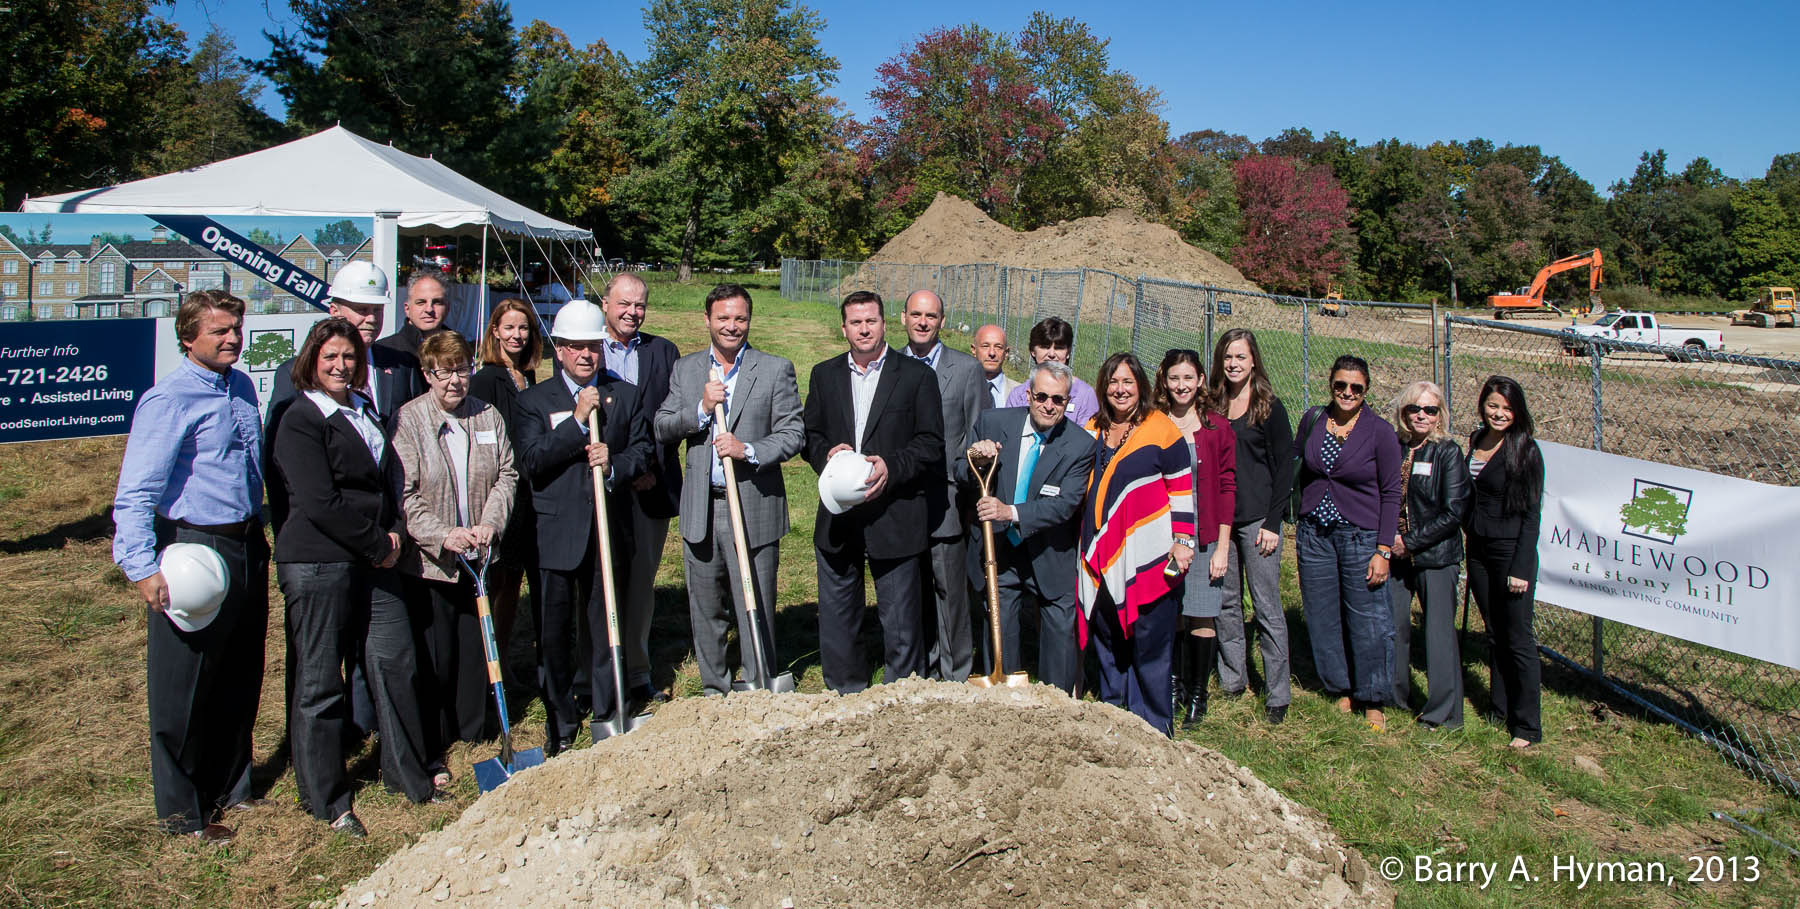 Maplewood at Stony Hill Groundbreaking by Barry A. Hyman